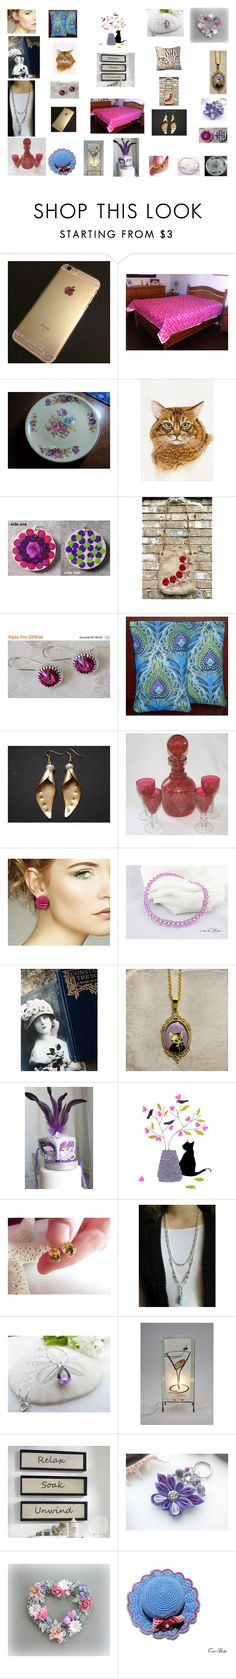 """""""Valentine Gifts for Her"""" by einder ❤ liked on Polyvore featuring Masquerade and vintage"""